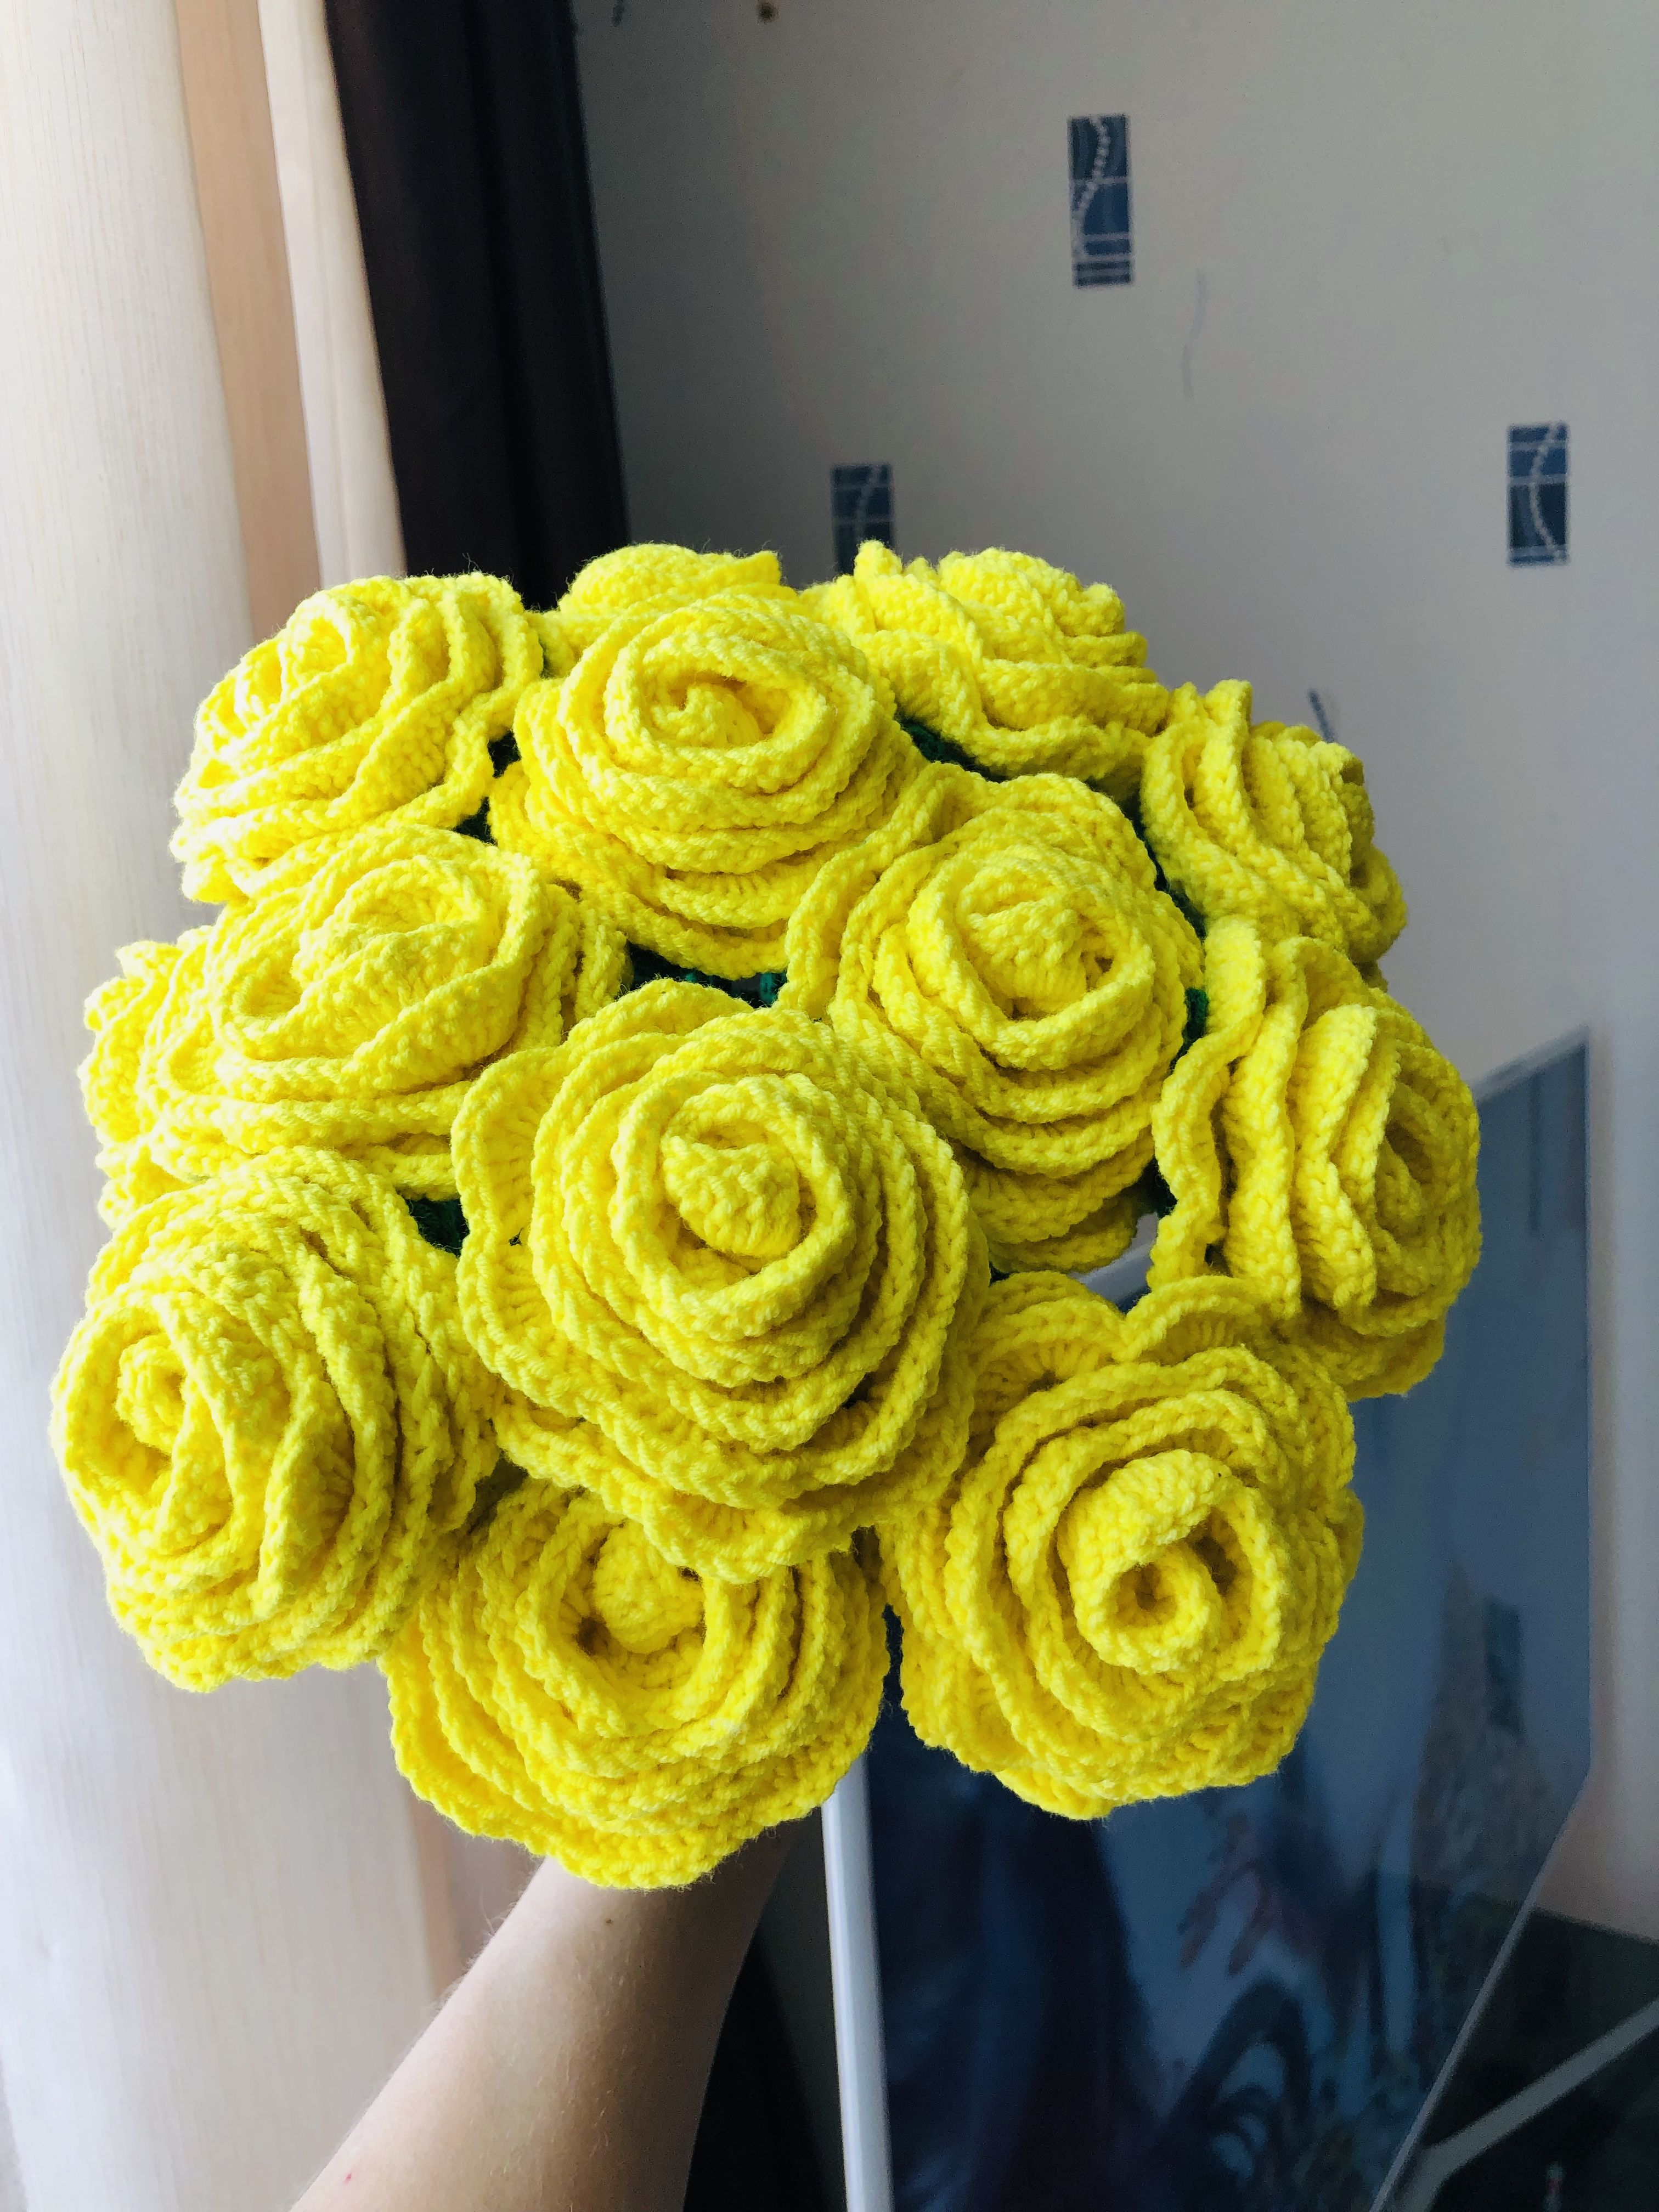 Handmade roses bouquet knitted beautiful flowers gift to